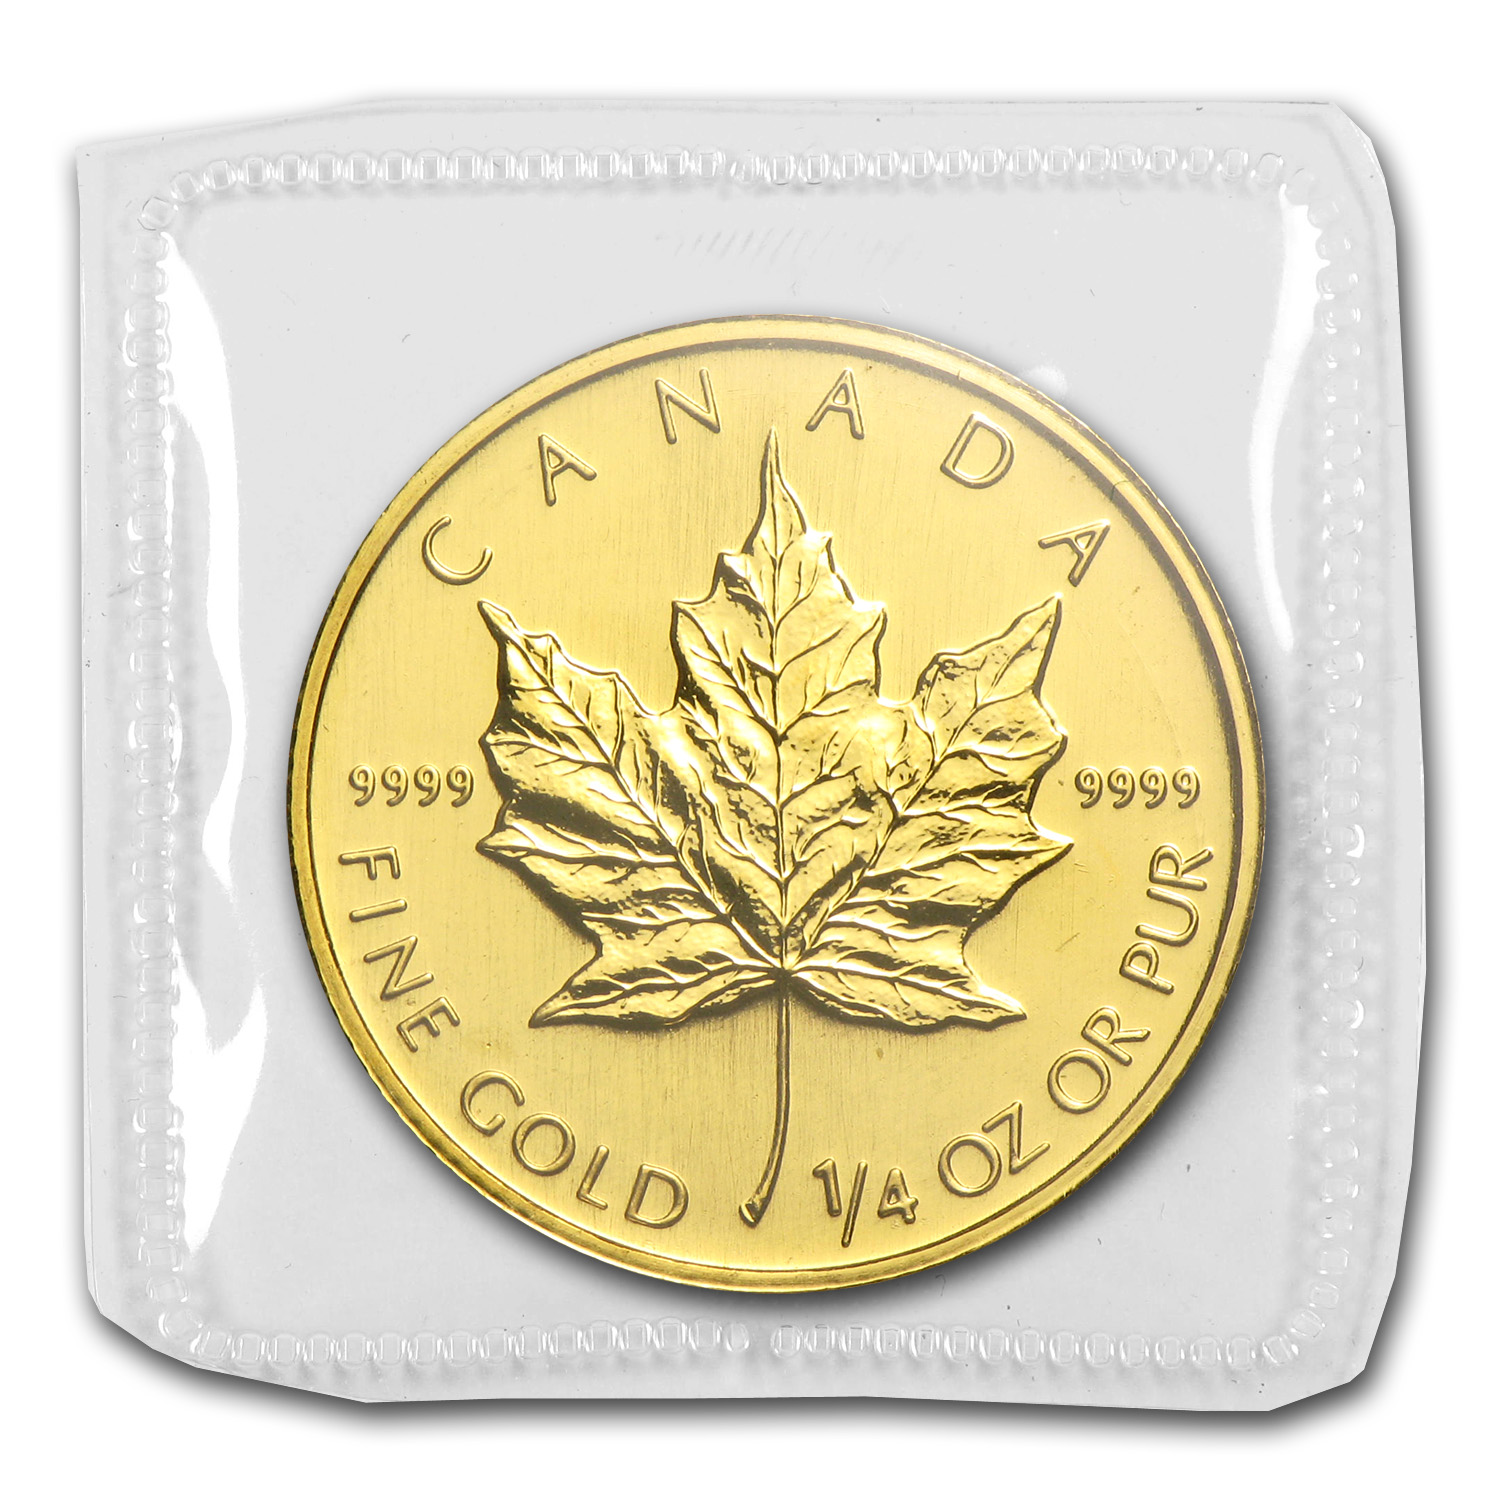 2008 1/4 oz Gold Canadian Maple Leaf